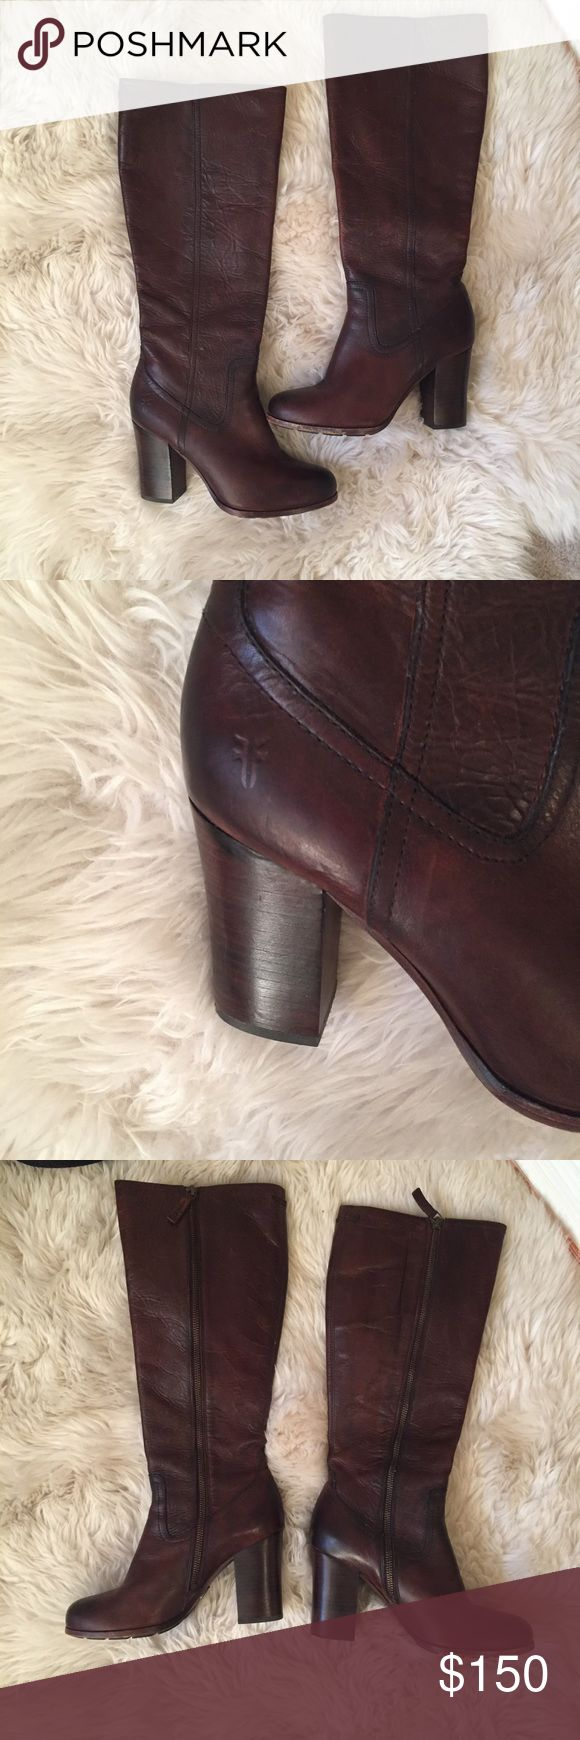 Brown heeled fry boots These kinda have a distressed look, but as you can tell from the bottom of the soles these haven't been worn too often. Just have been sitting in my closet! The leather is very soft and has aged well! Frye Shoes Heeled Boots